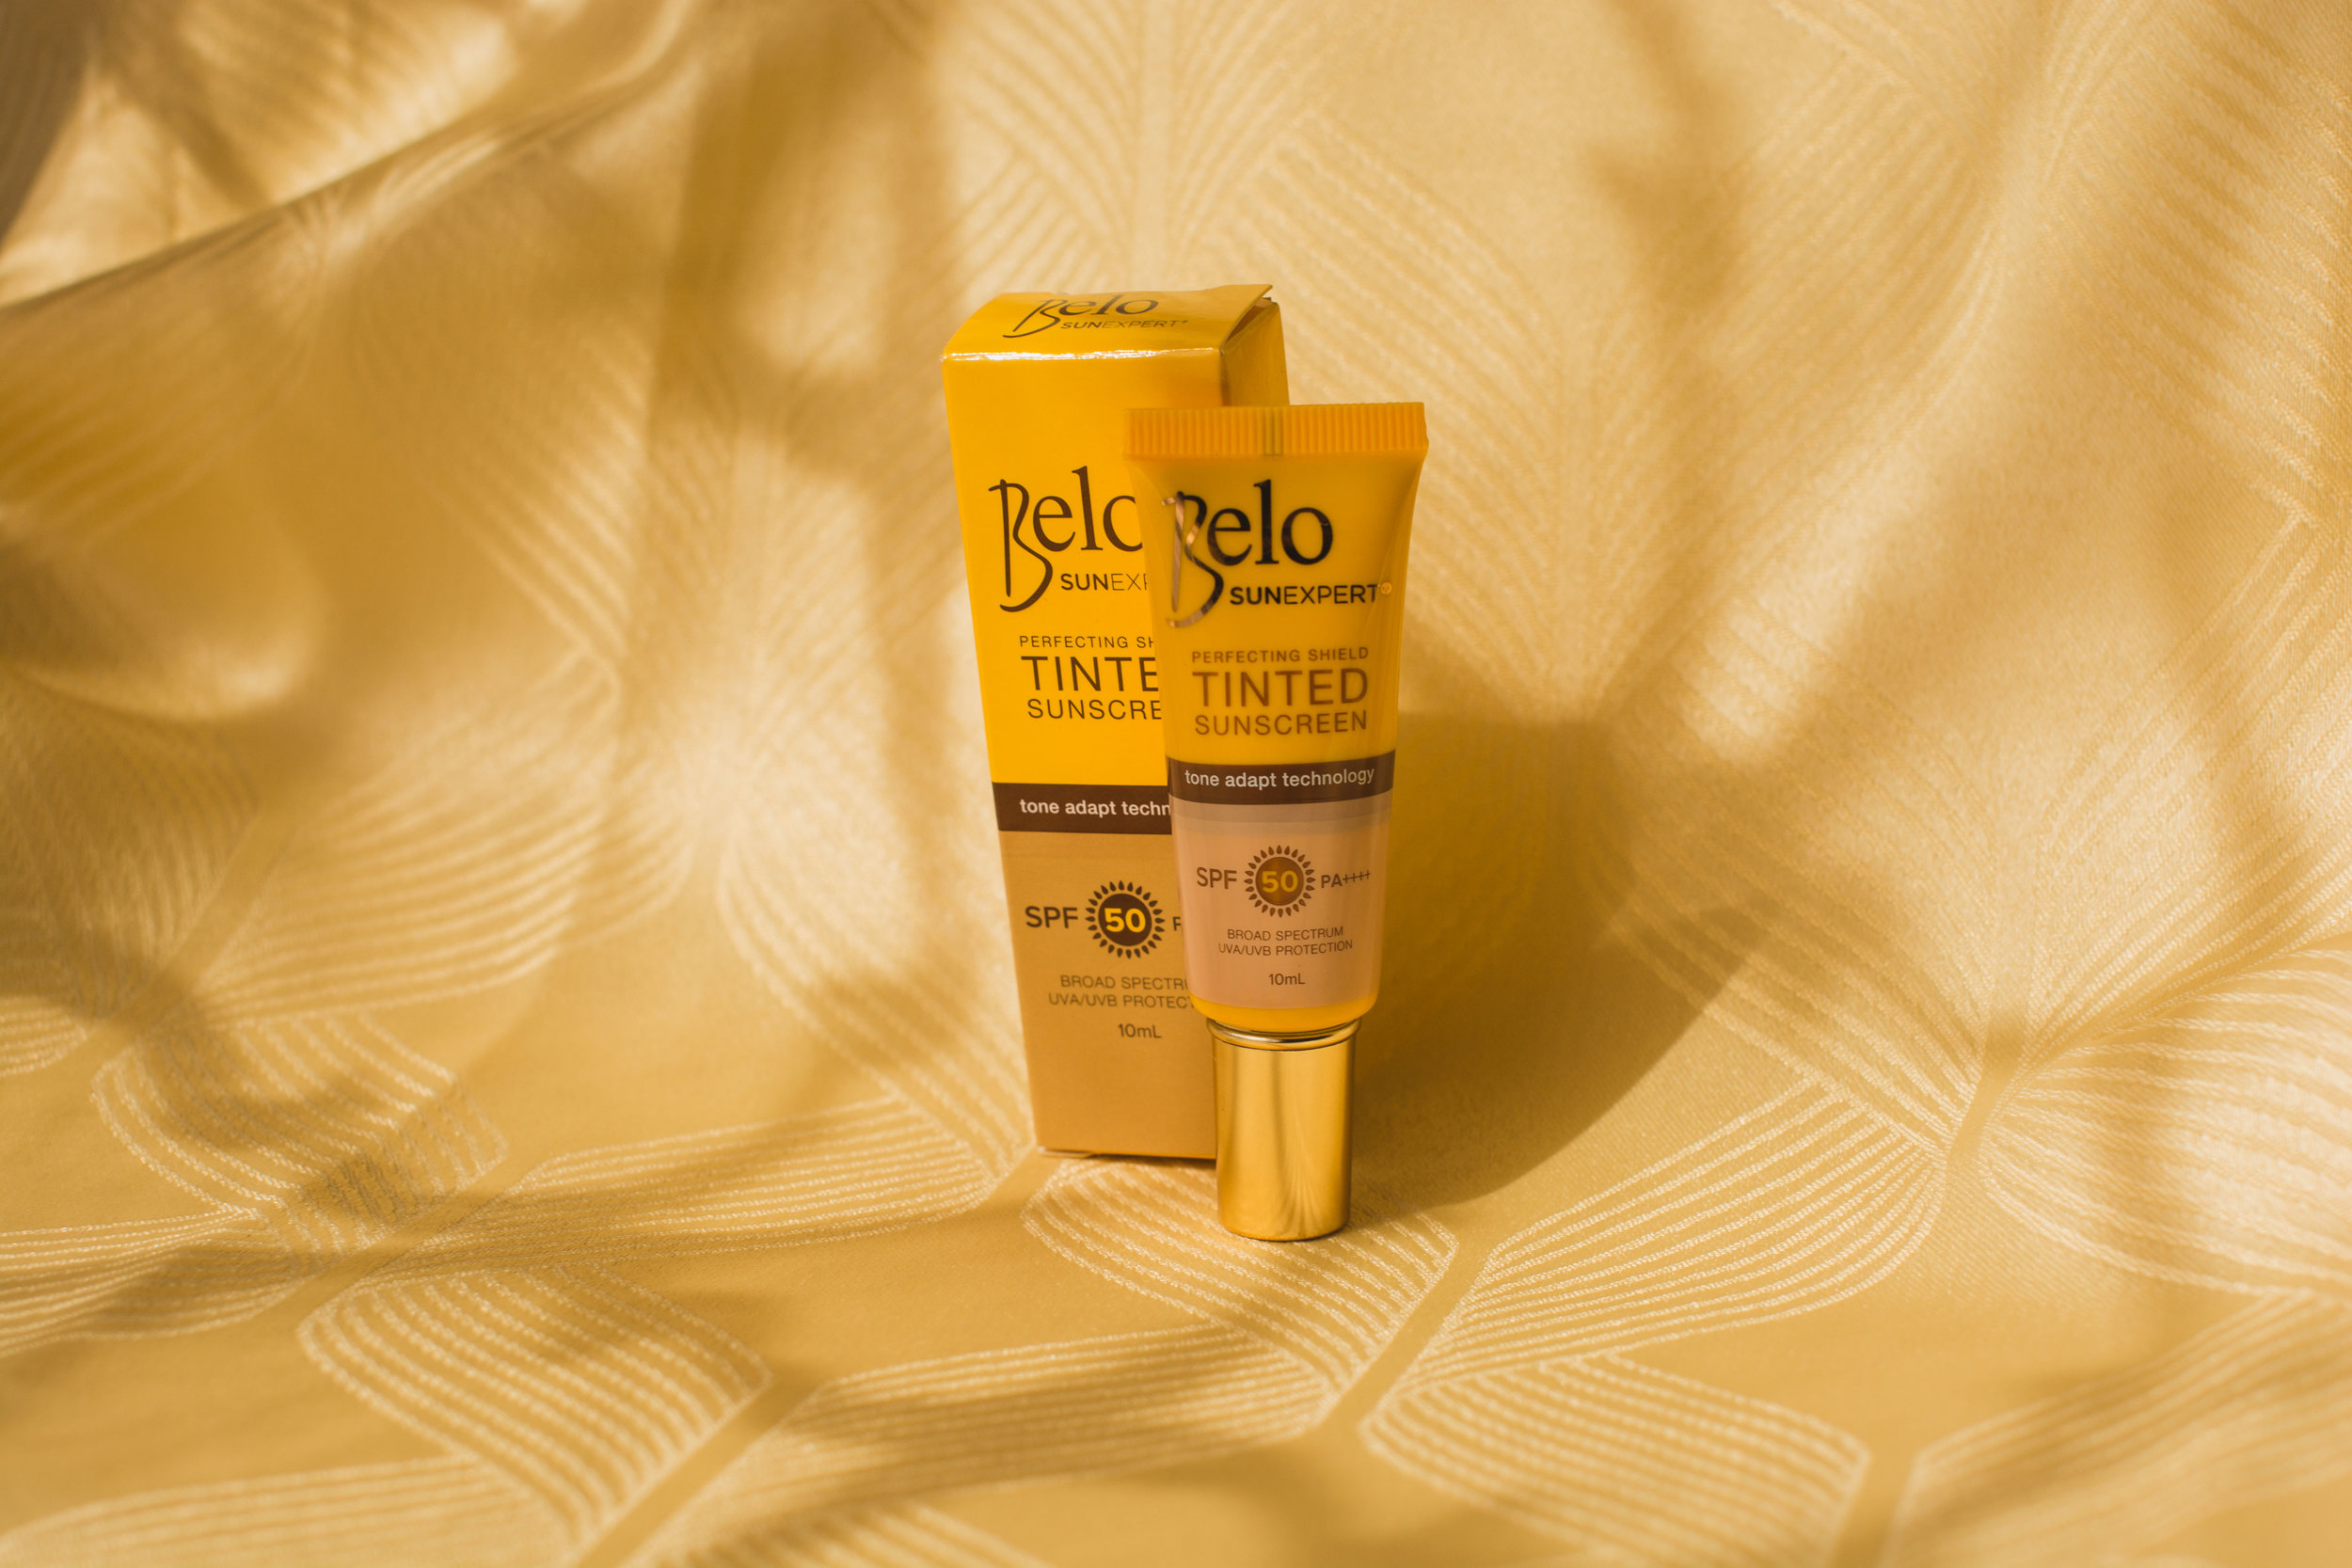 local-sunscreens-face-and-body_dermplus-celeteque-kojie-san-maxipeel-belo_review-philippines_2019-5.jpg